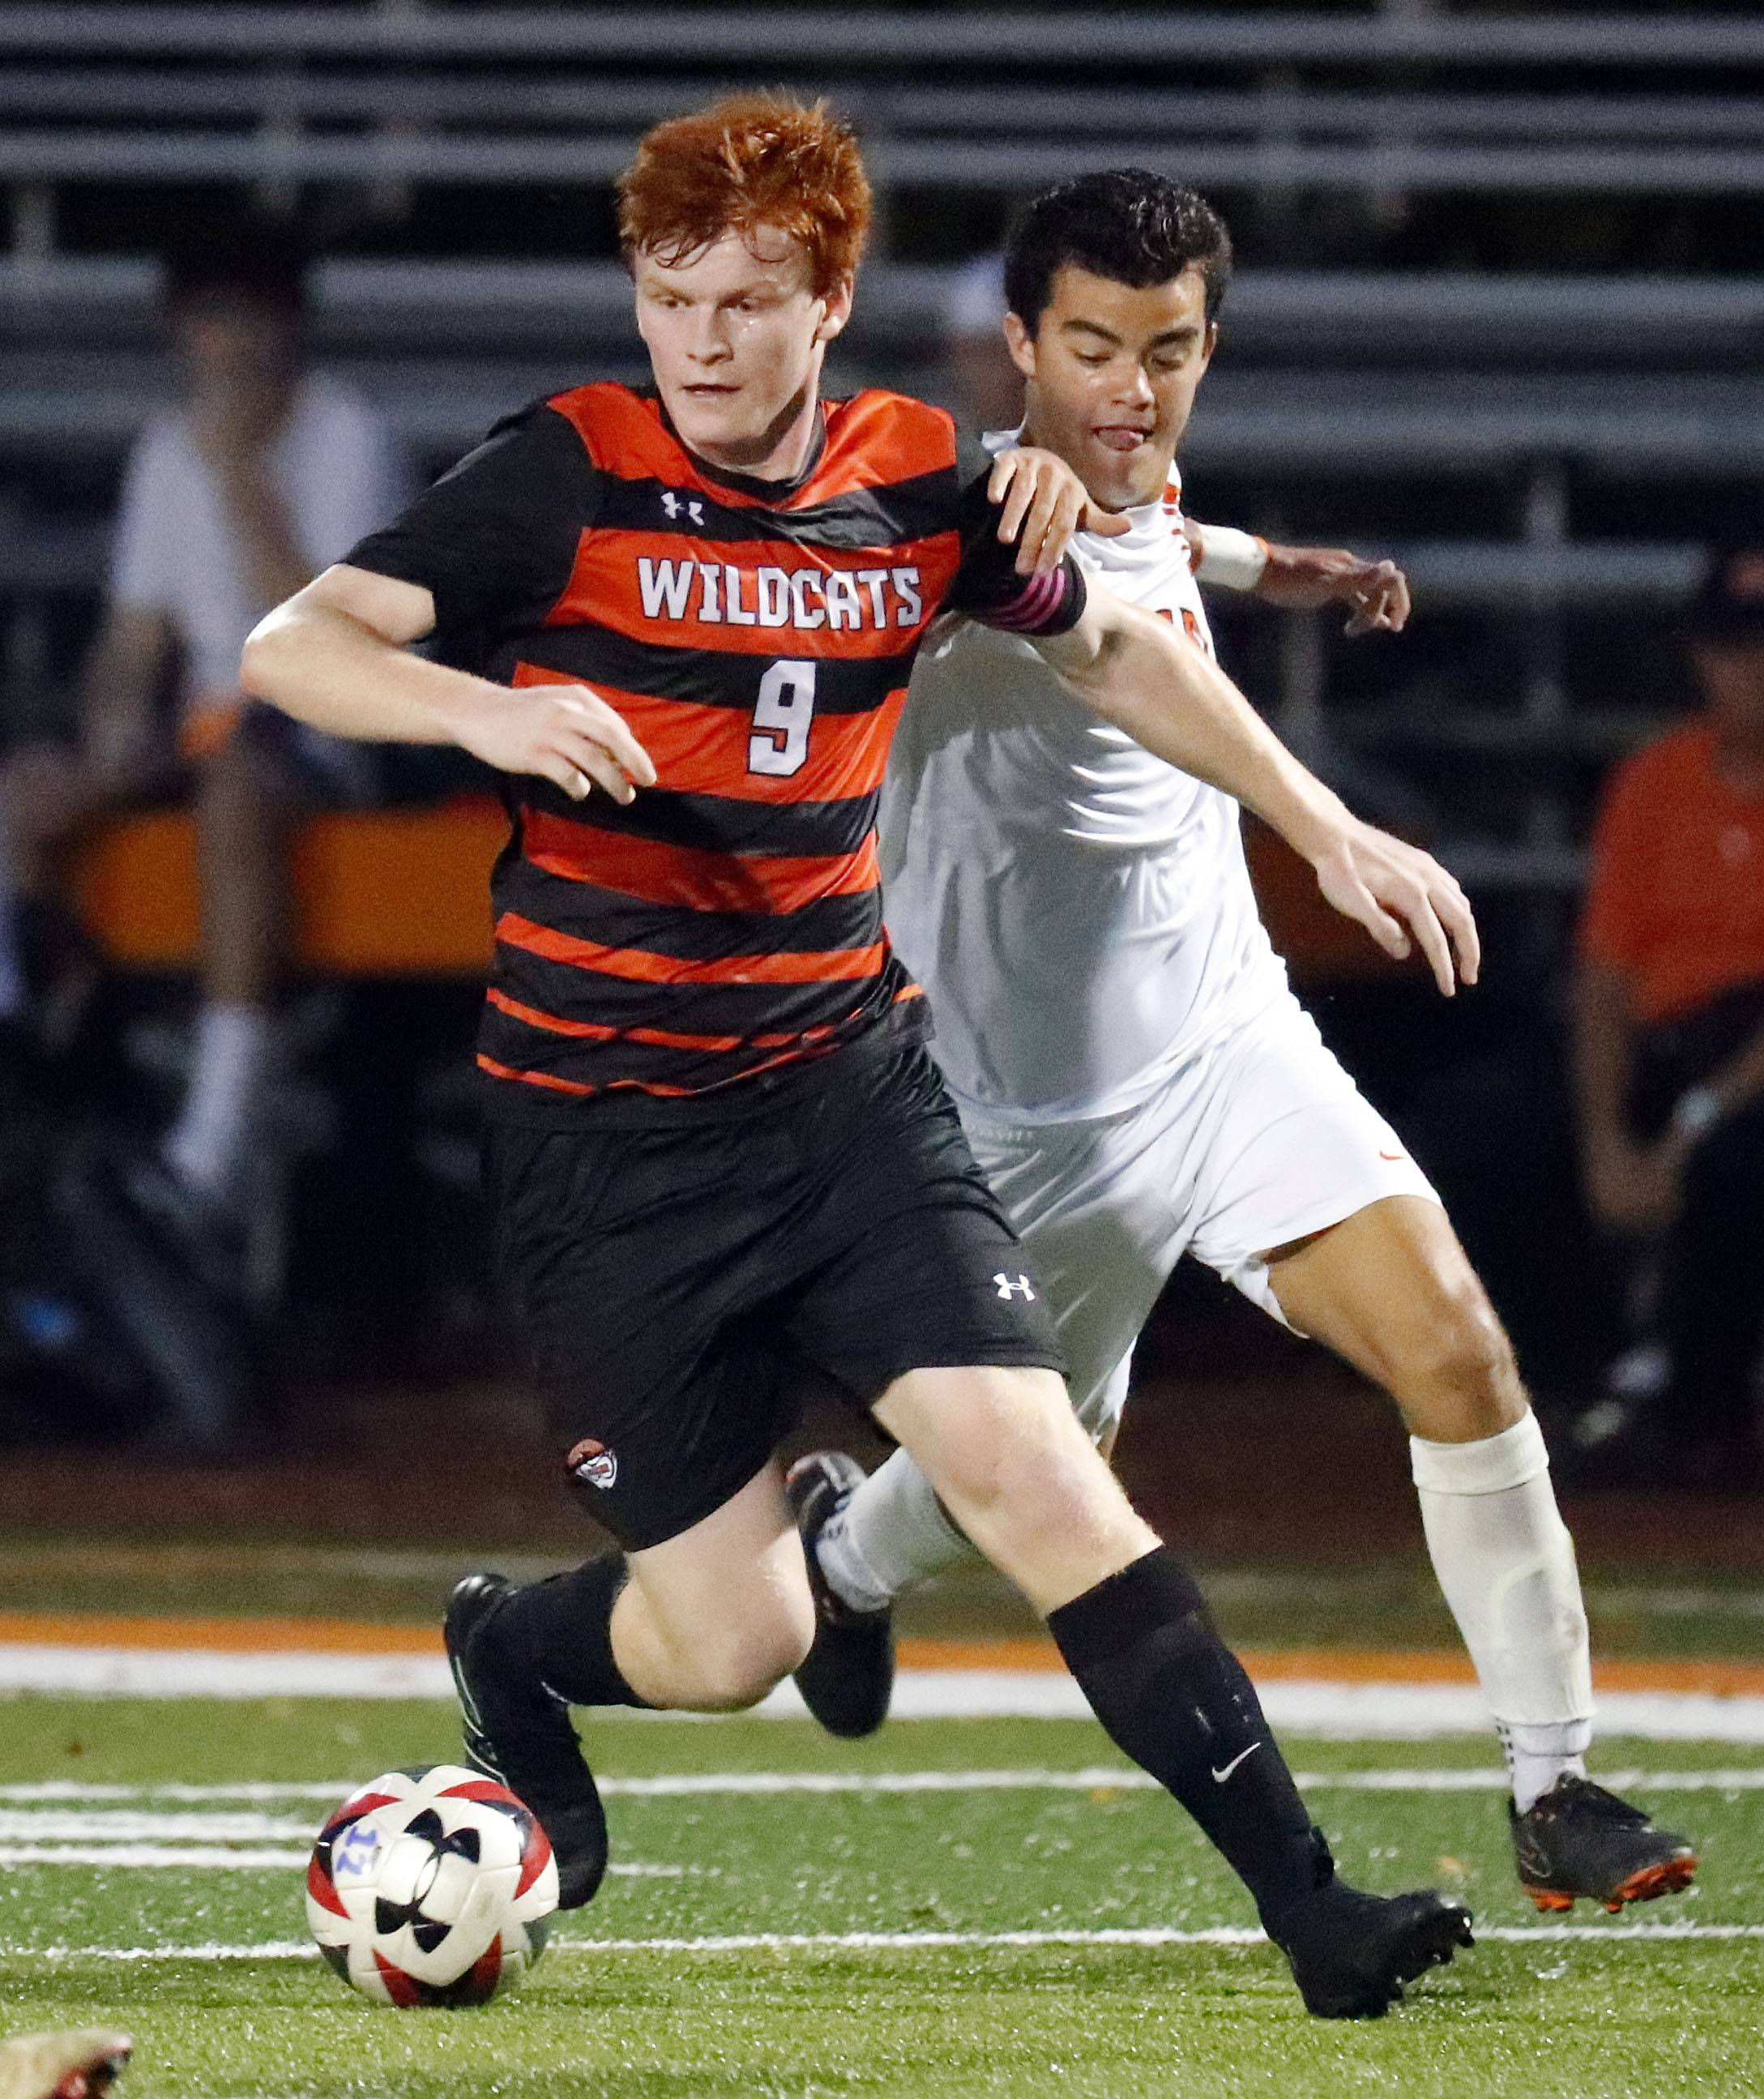 Libertyville's Evan Rasmussen, left, drives on Lake Forest Academy's Sergio Estrelles during their game Tuesday night in Libertyville.